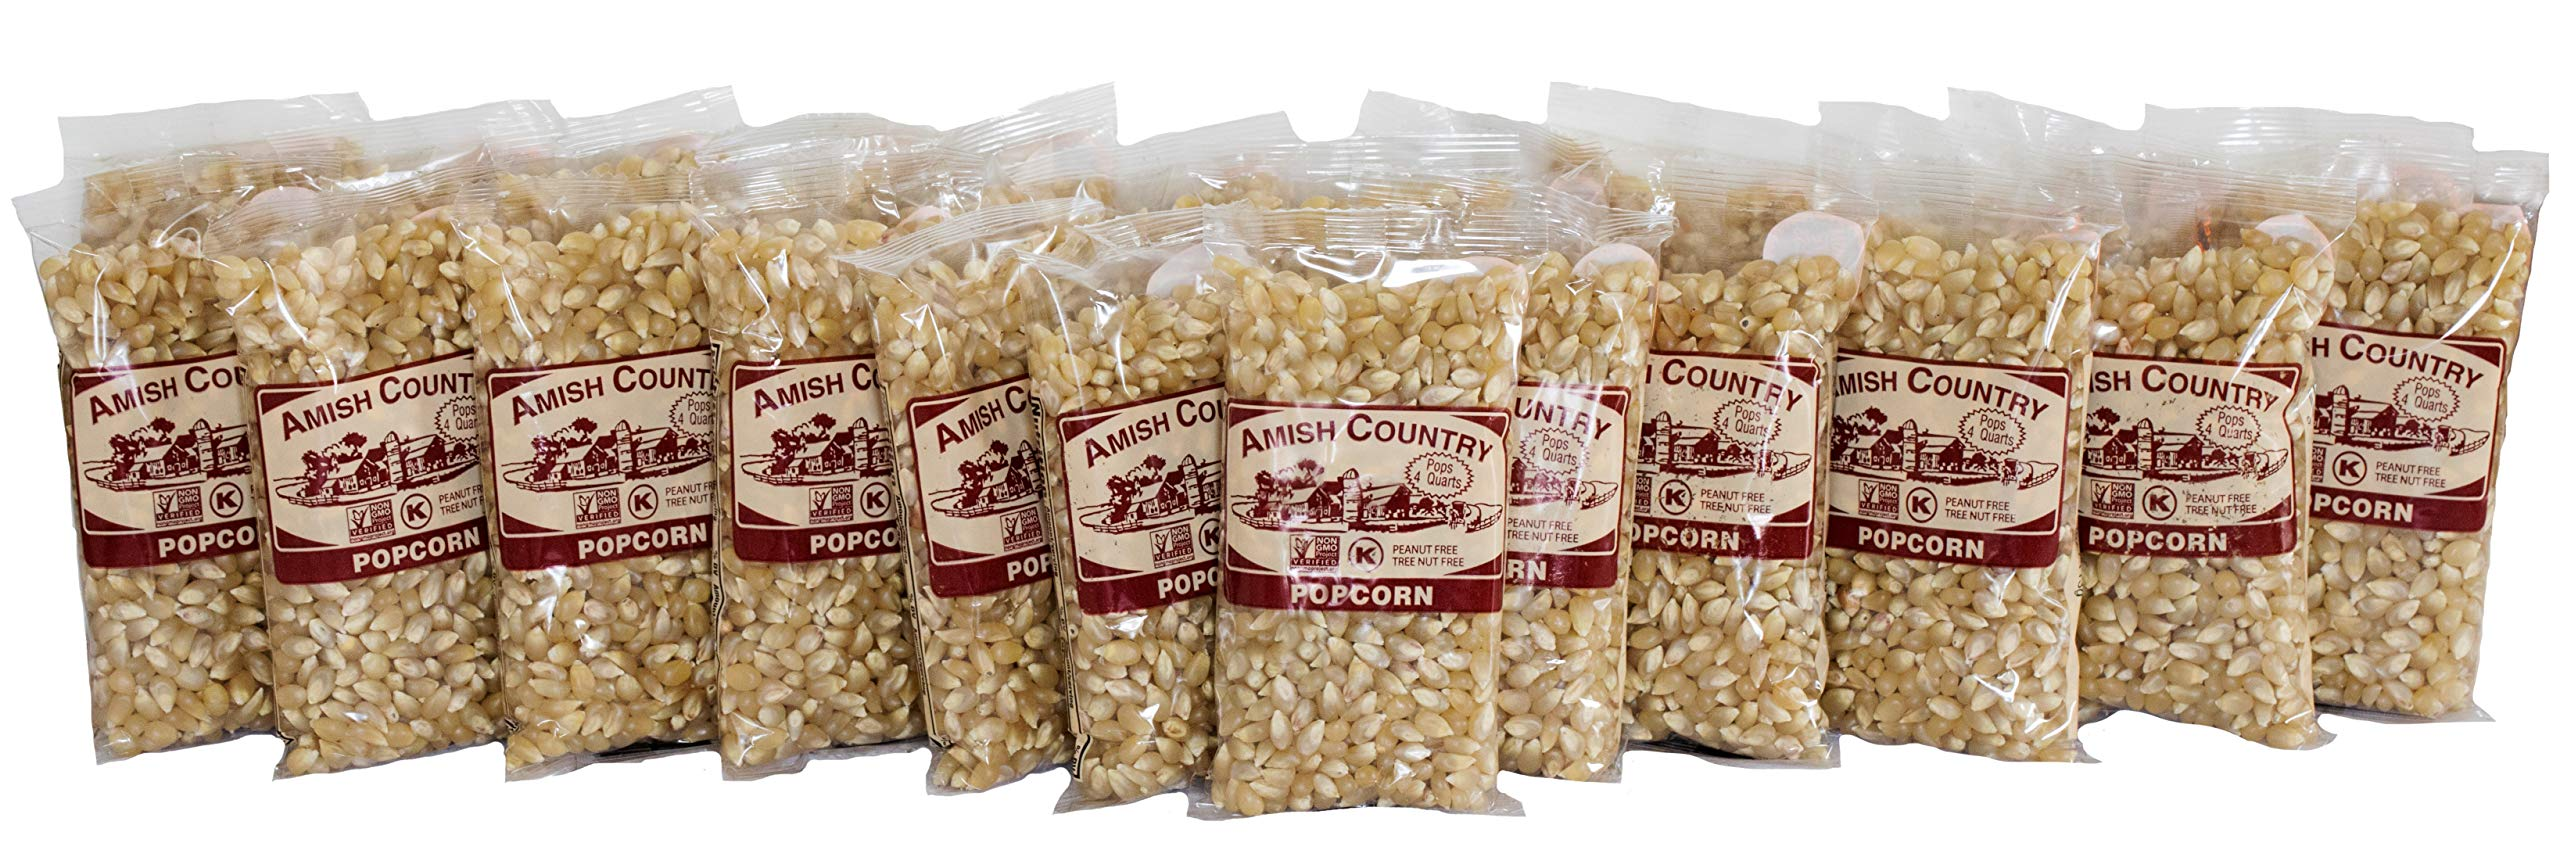 Amish Country Popcorn - Medium White Kernels 4 Ounce Bags (24 Pack) - Old Fashioned, Non GMO, and Gluten Free - with Recipe Guide by Amish Country Popcorn